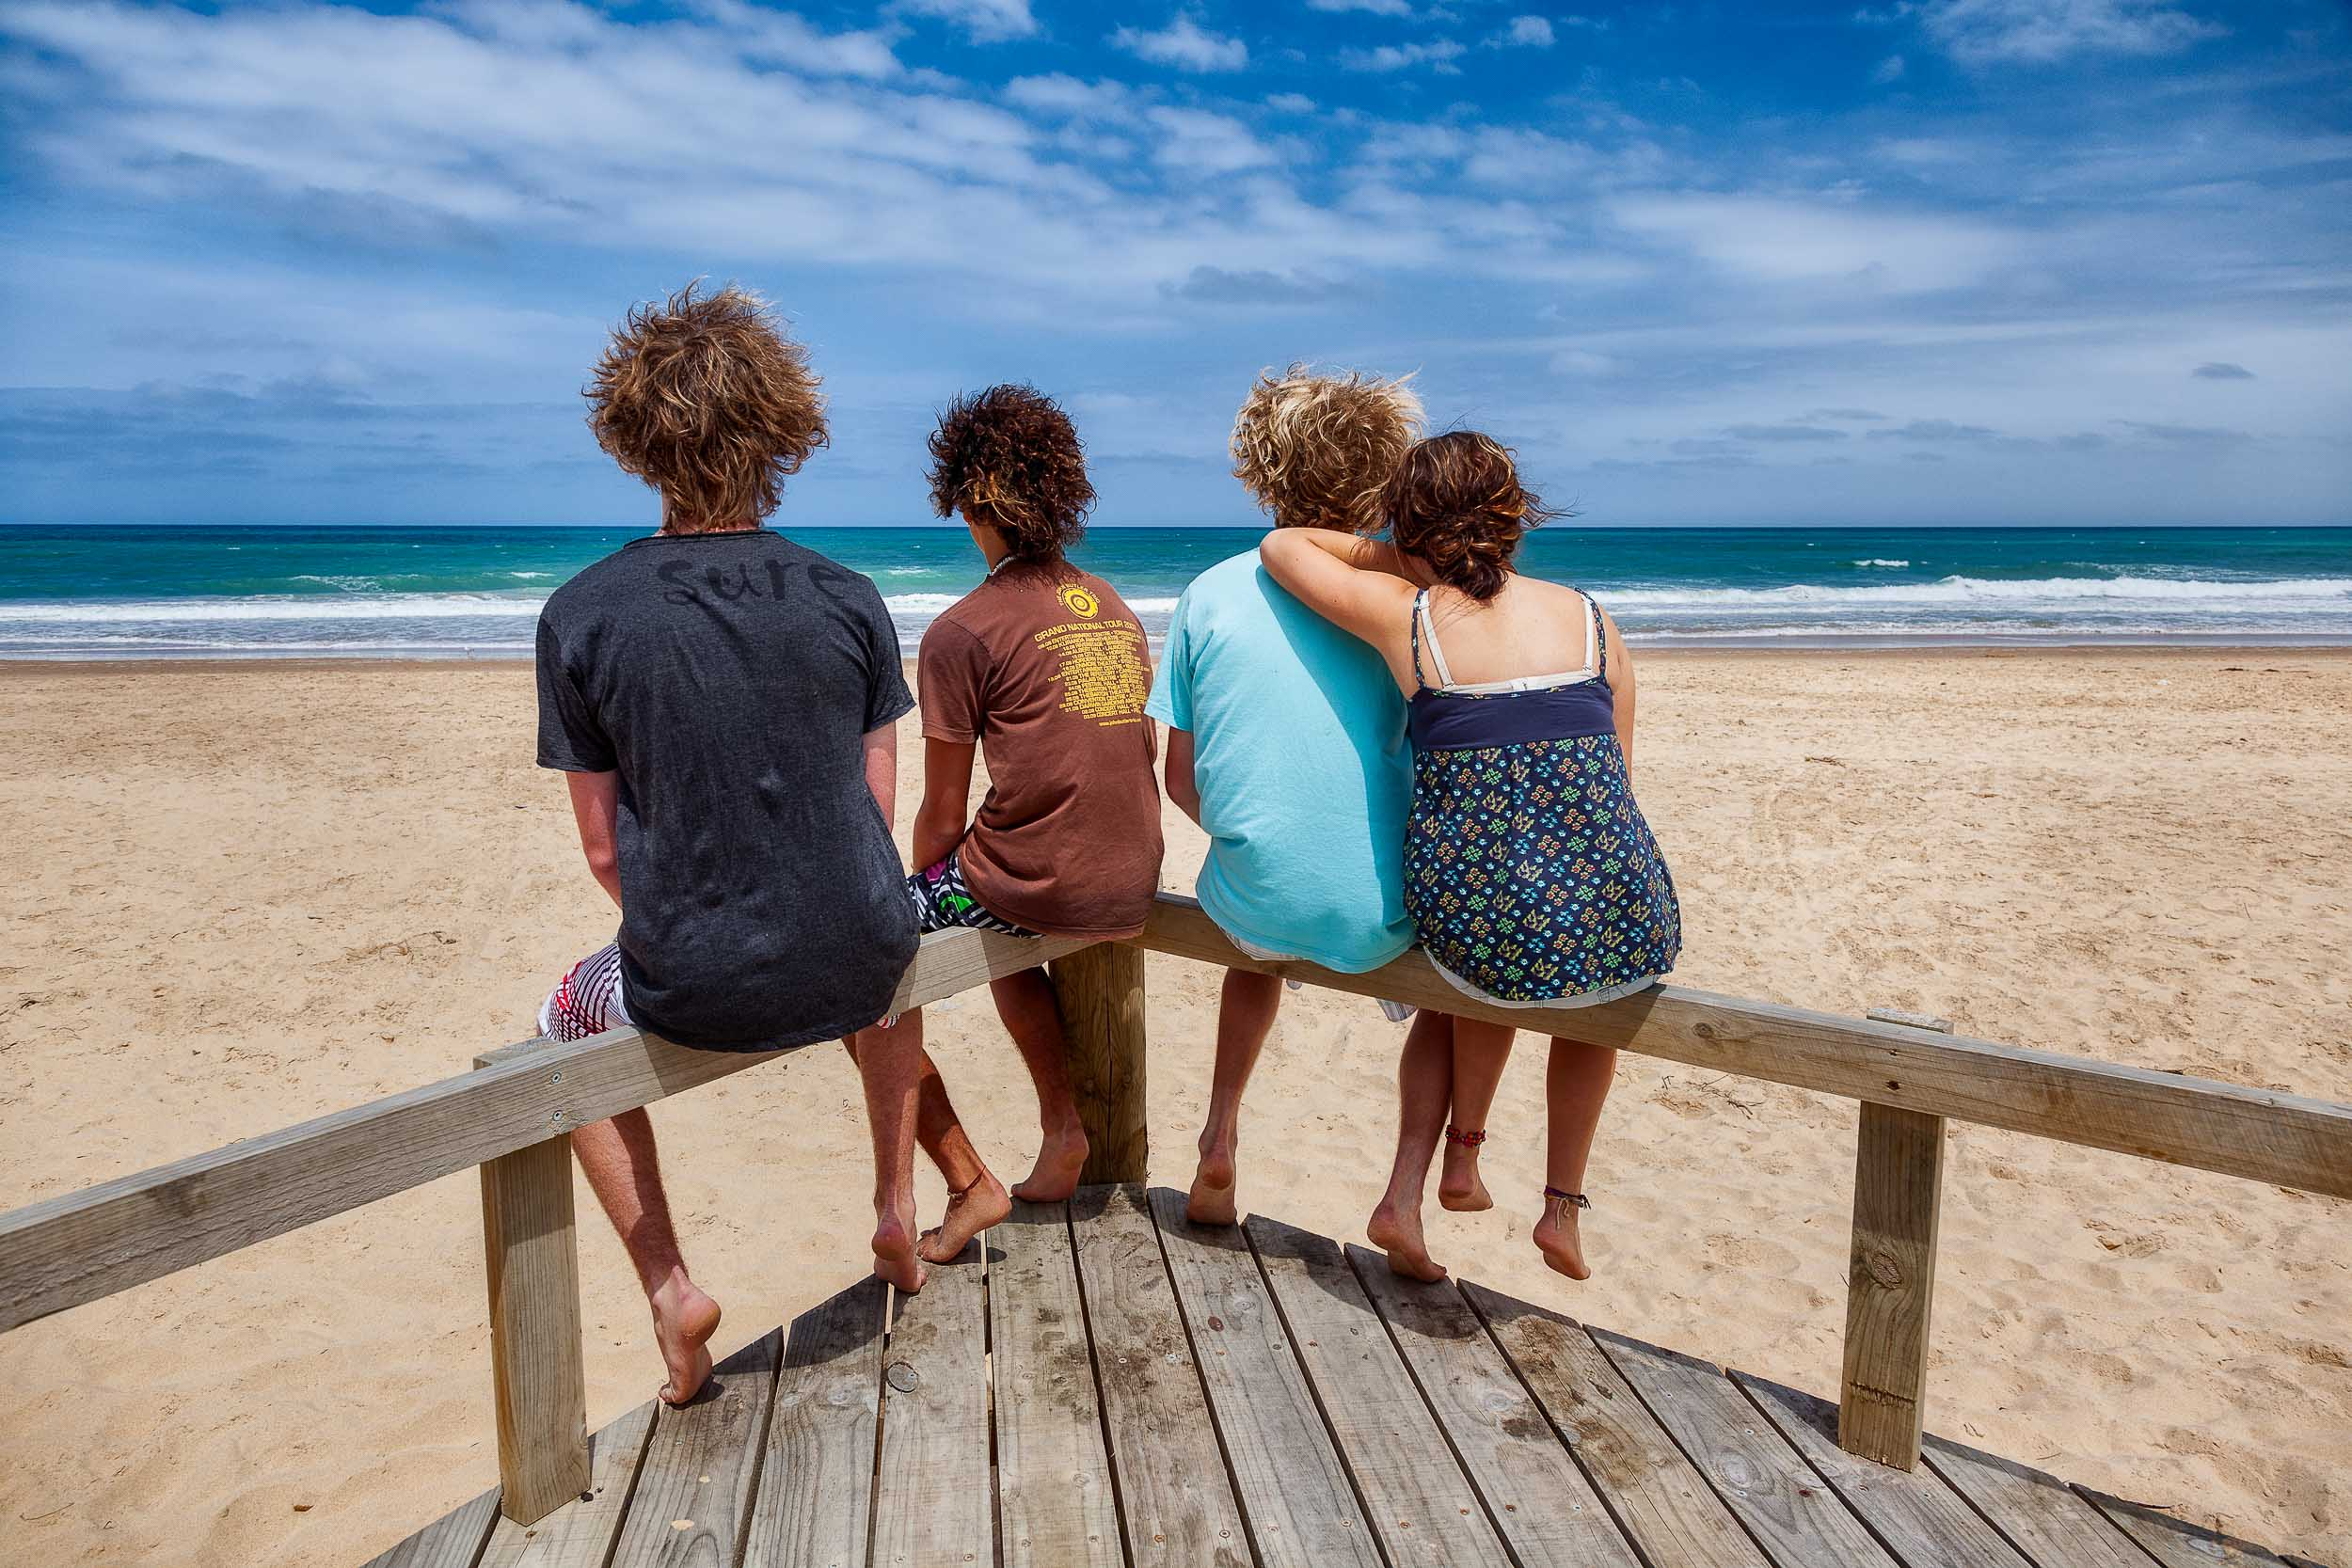 The    essence of friendship    on the beach at    Seaspray, Australia   .